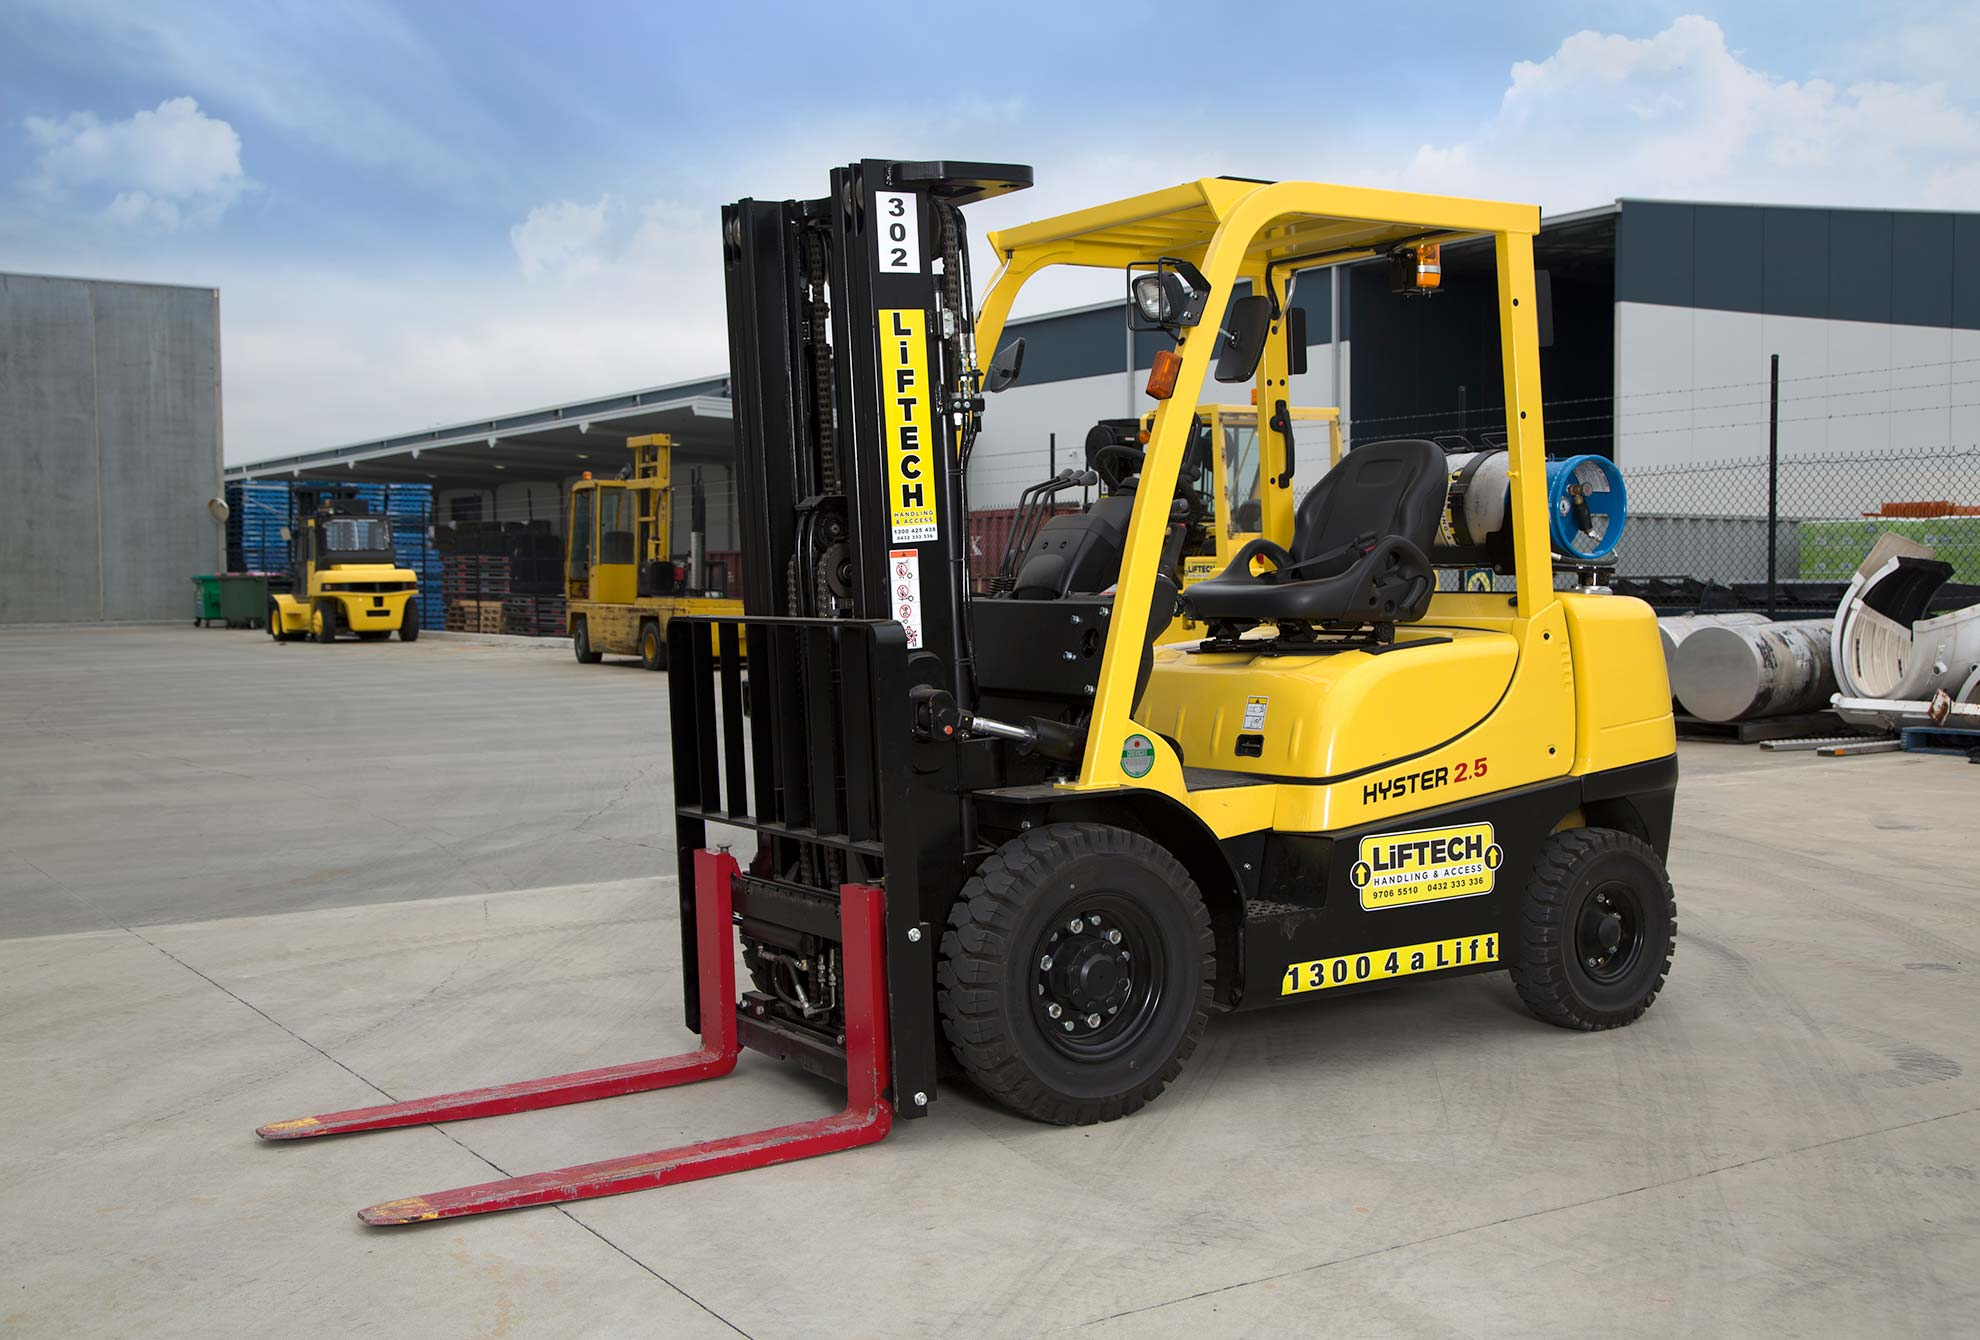 2.5 Tonne Container Forklift